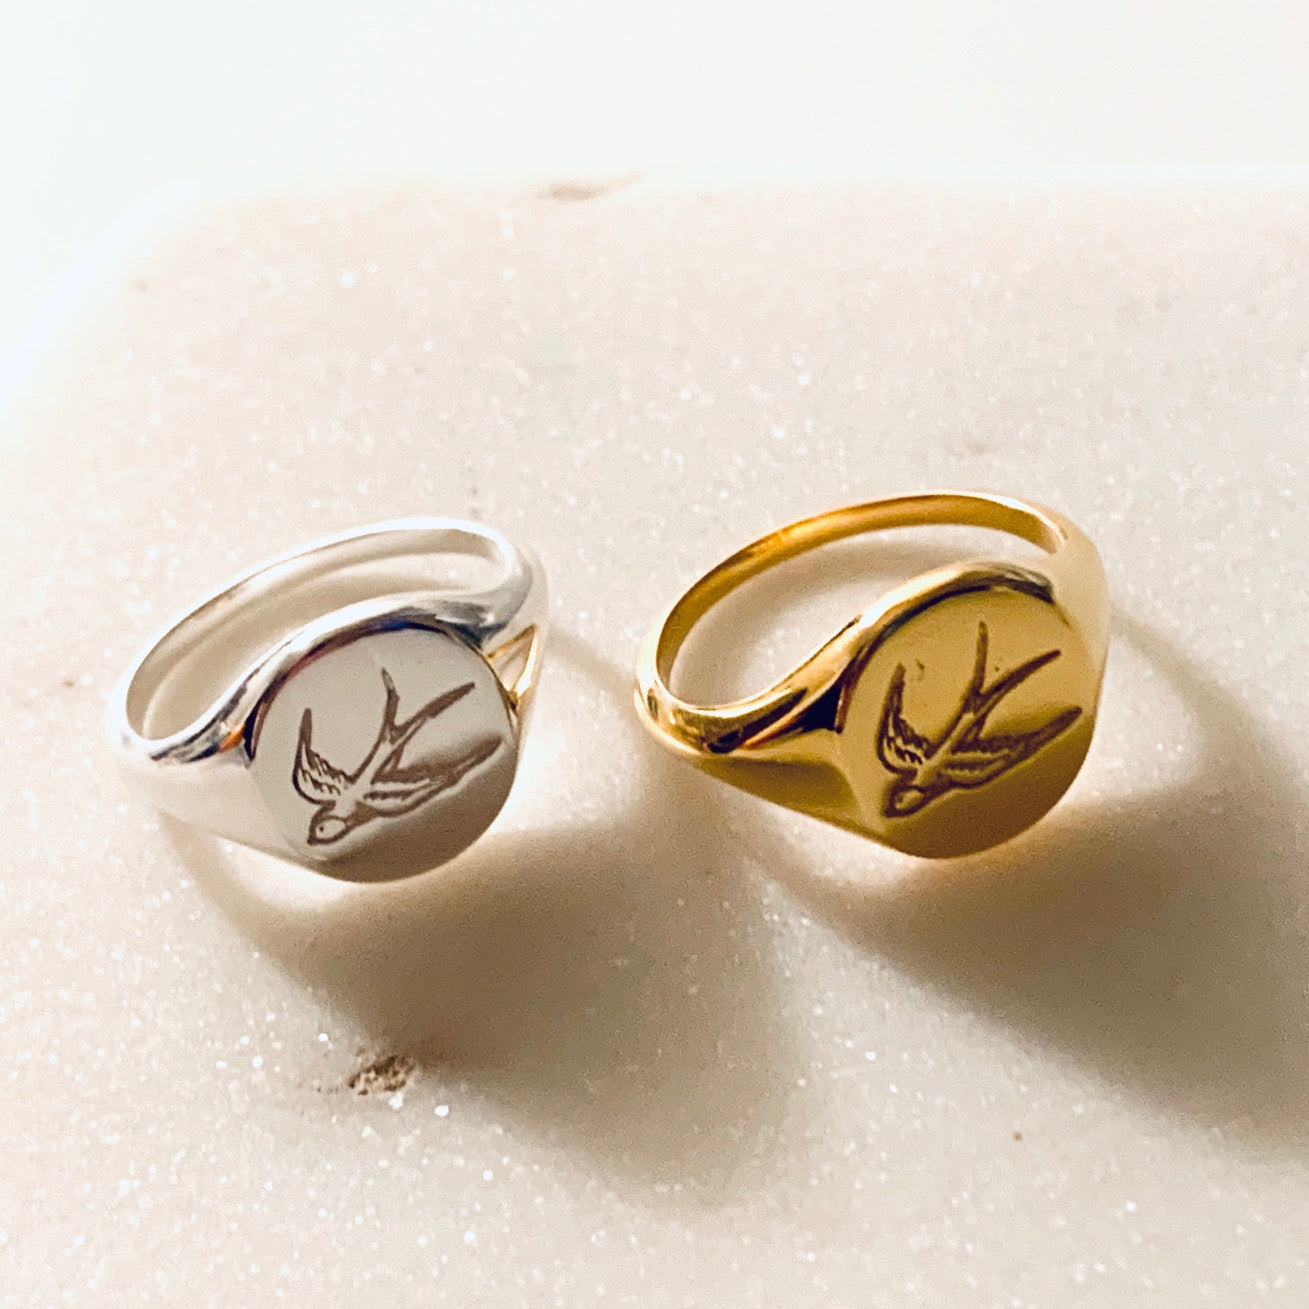 Swallow Signet Ring by Pearl & Queenie